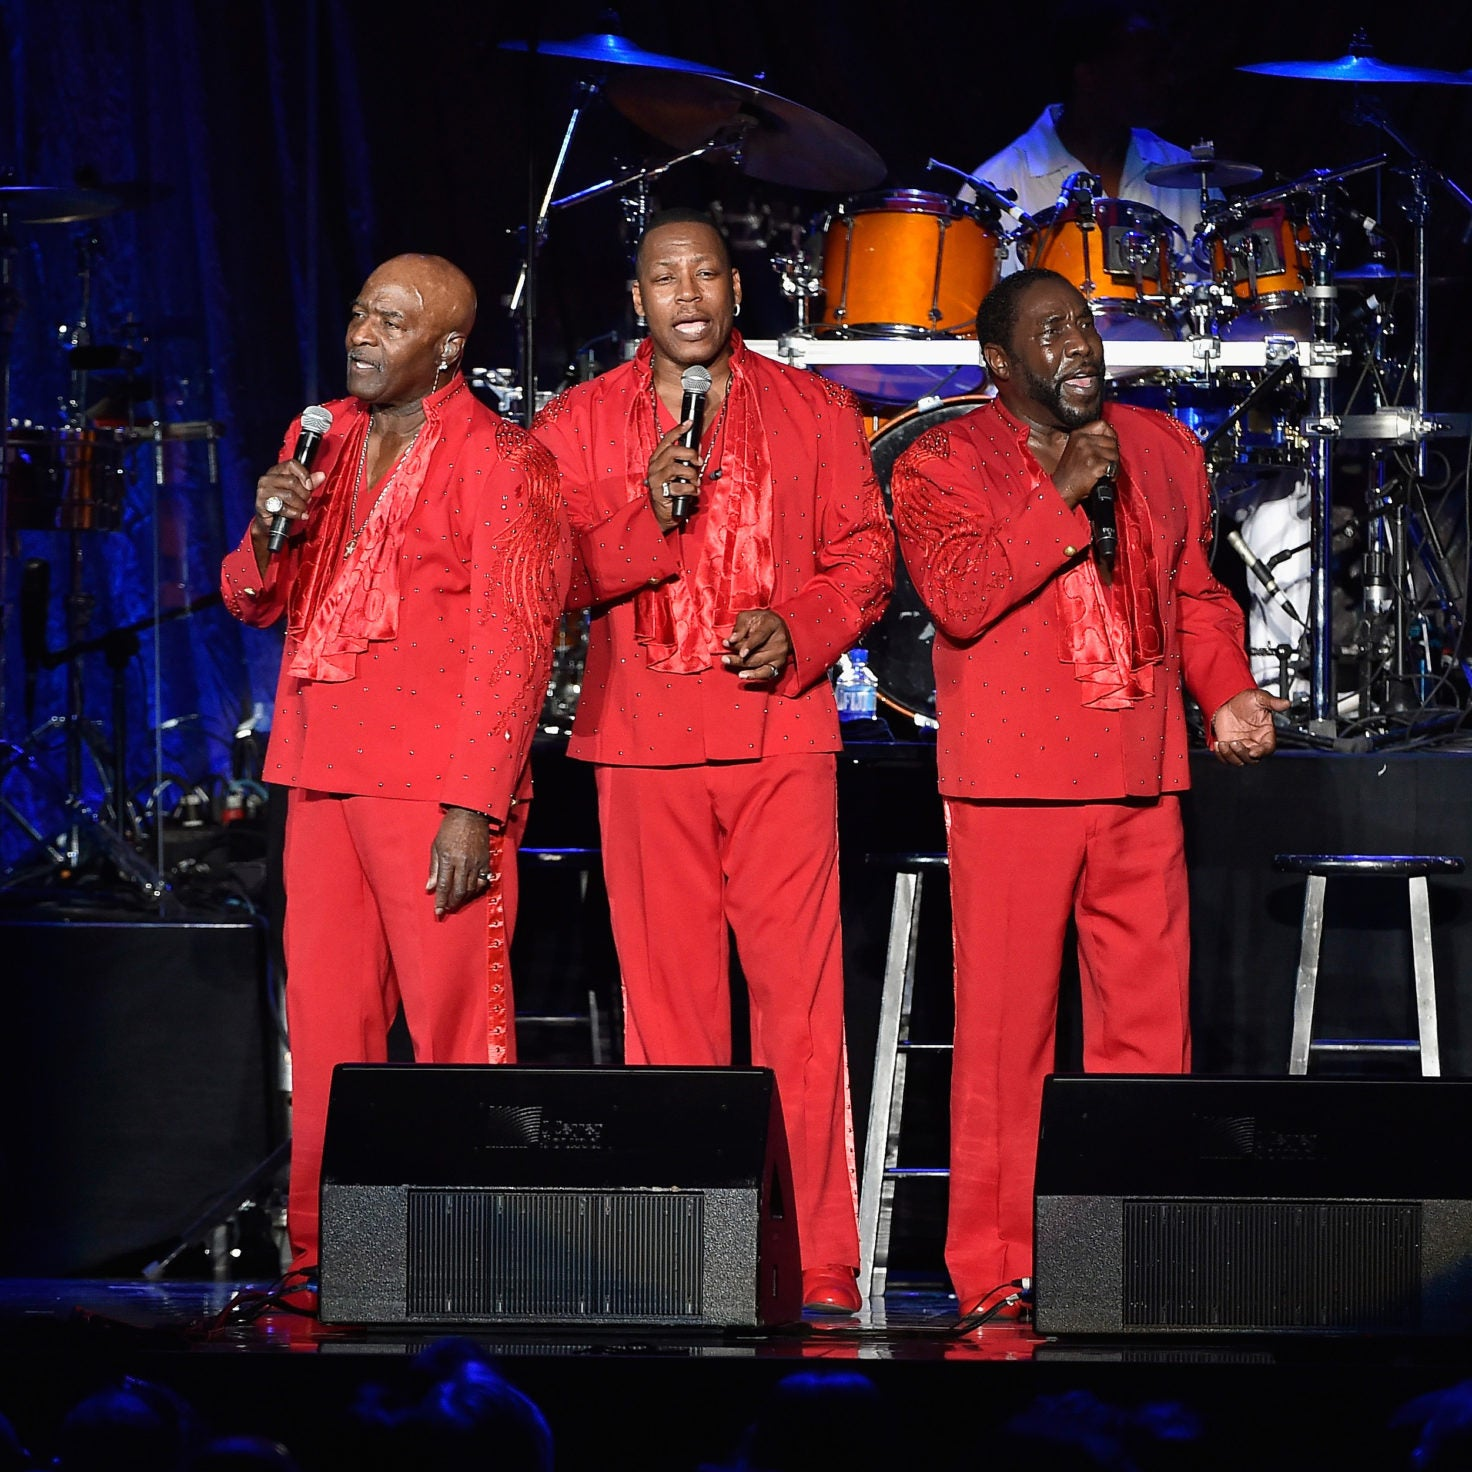 The O'Jays Give Advice For The New Generation Of Musicians, Calls Some Trends 'Buffoonery'